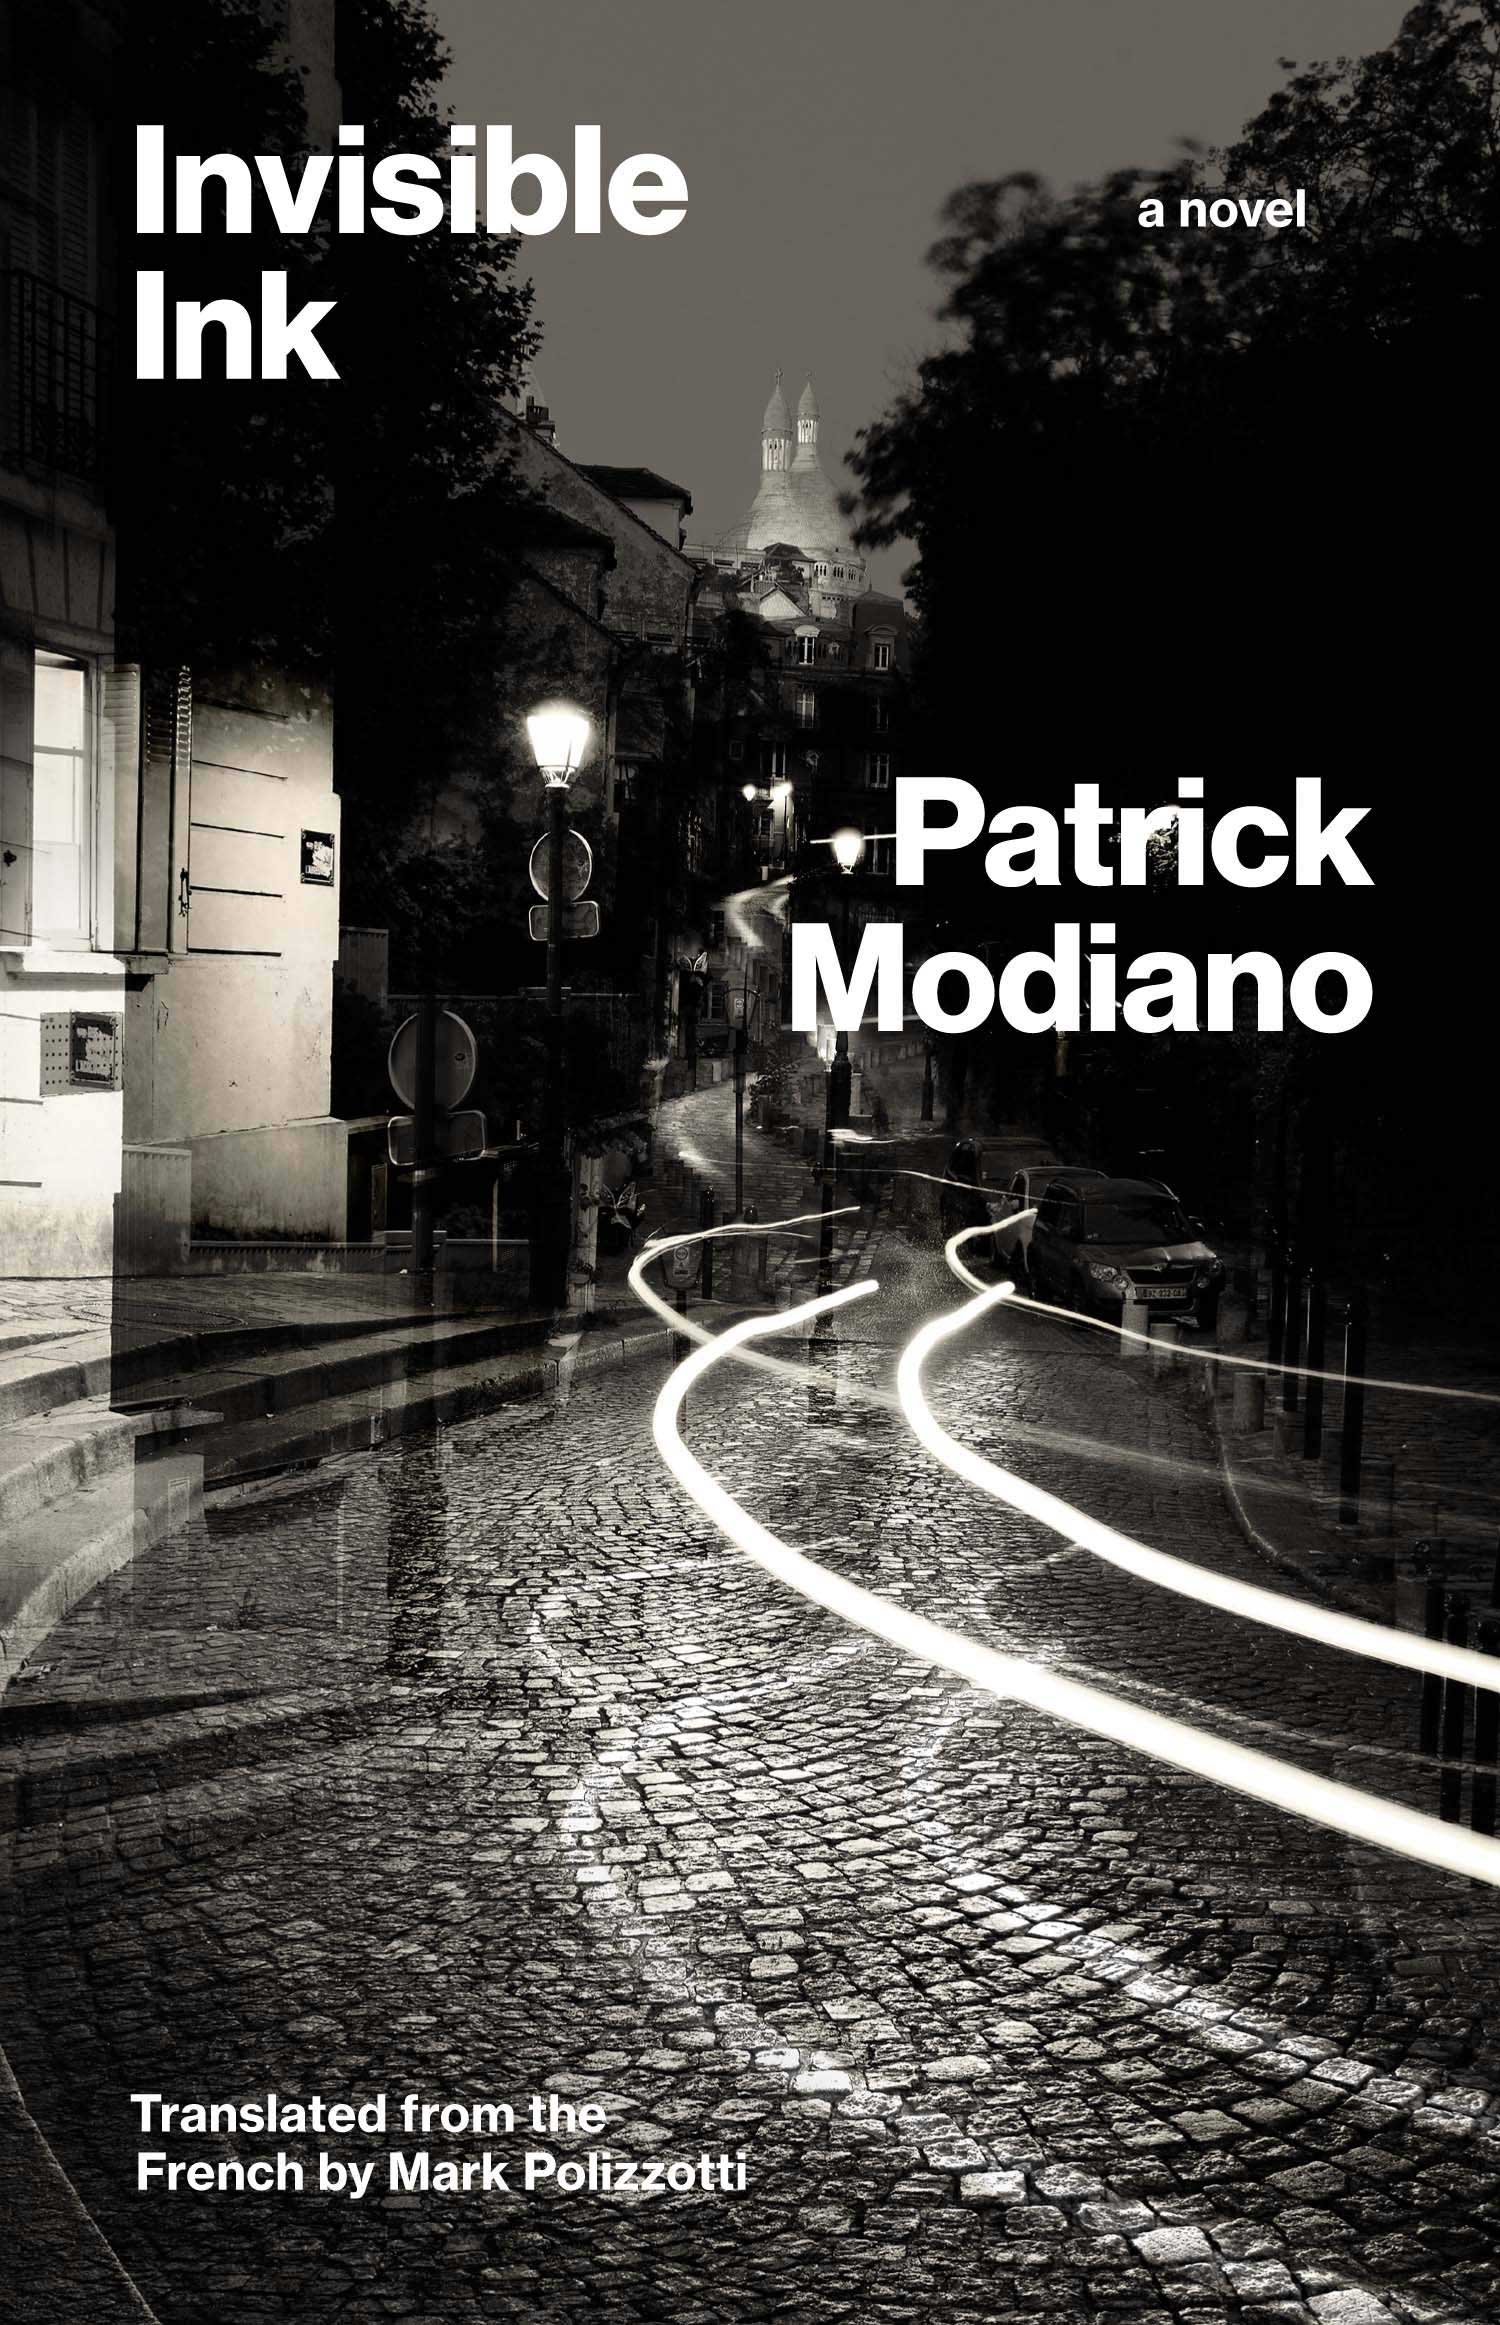 Invisible Ink: A Novel by Patrick Modiano, Yale, Rs 2,950